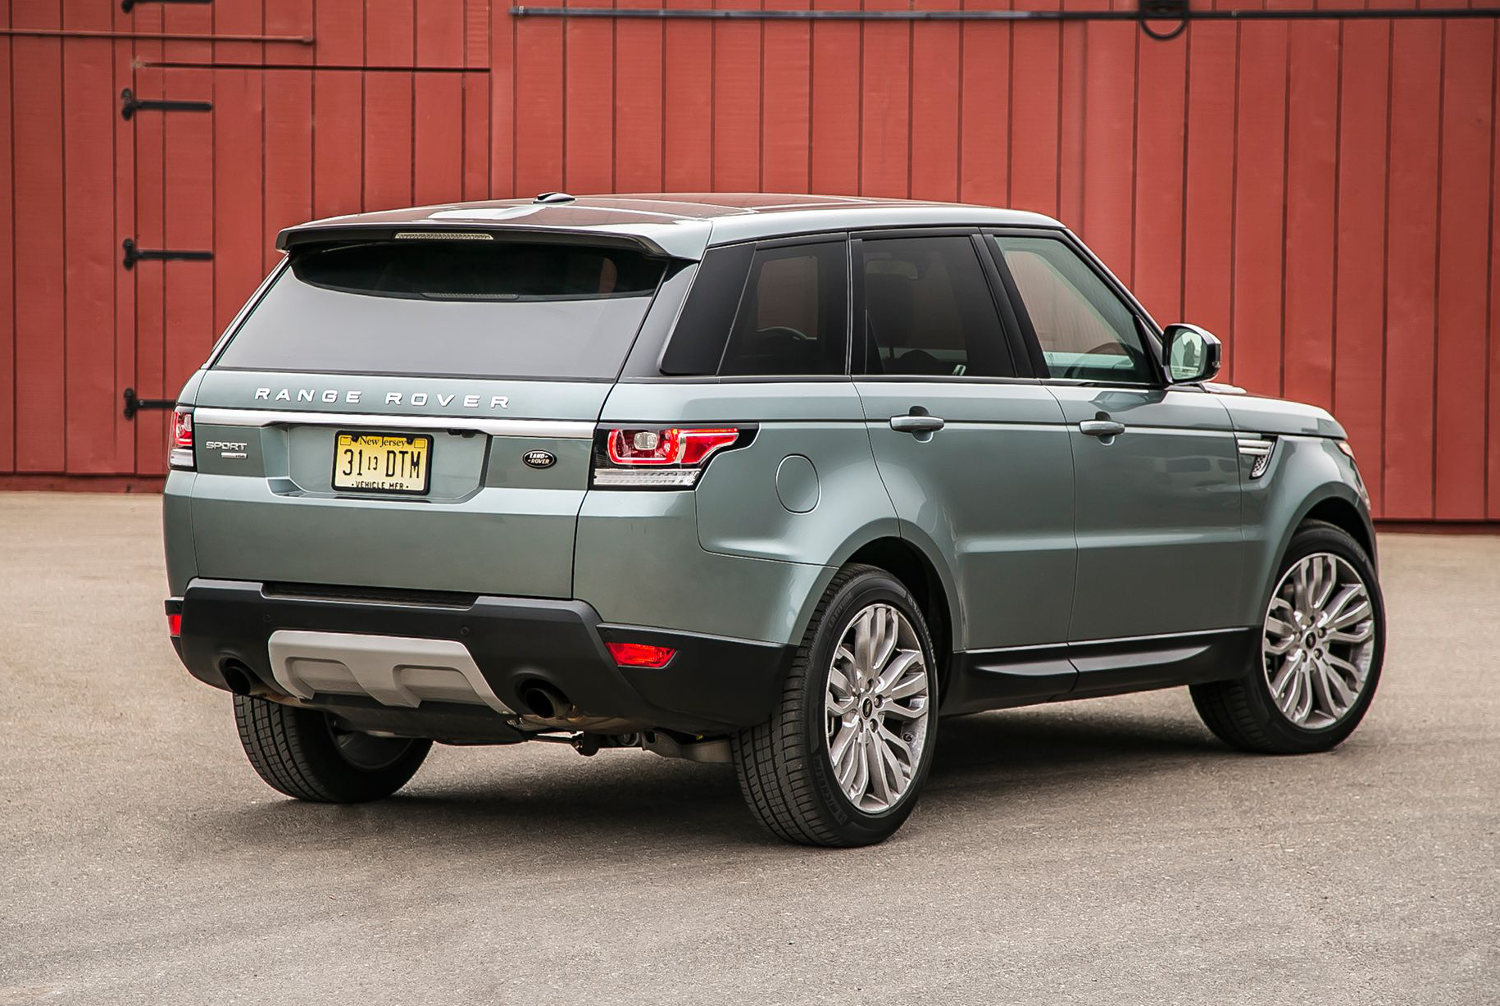 Land Rover Vs Range Rover Comparison Ford Explorer Limited 2016 Vs Land Rover